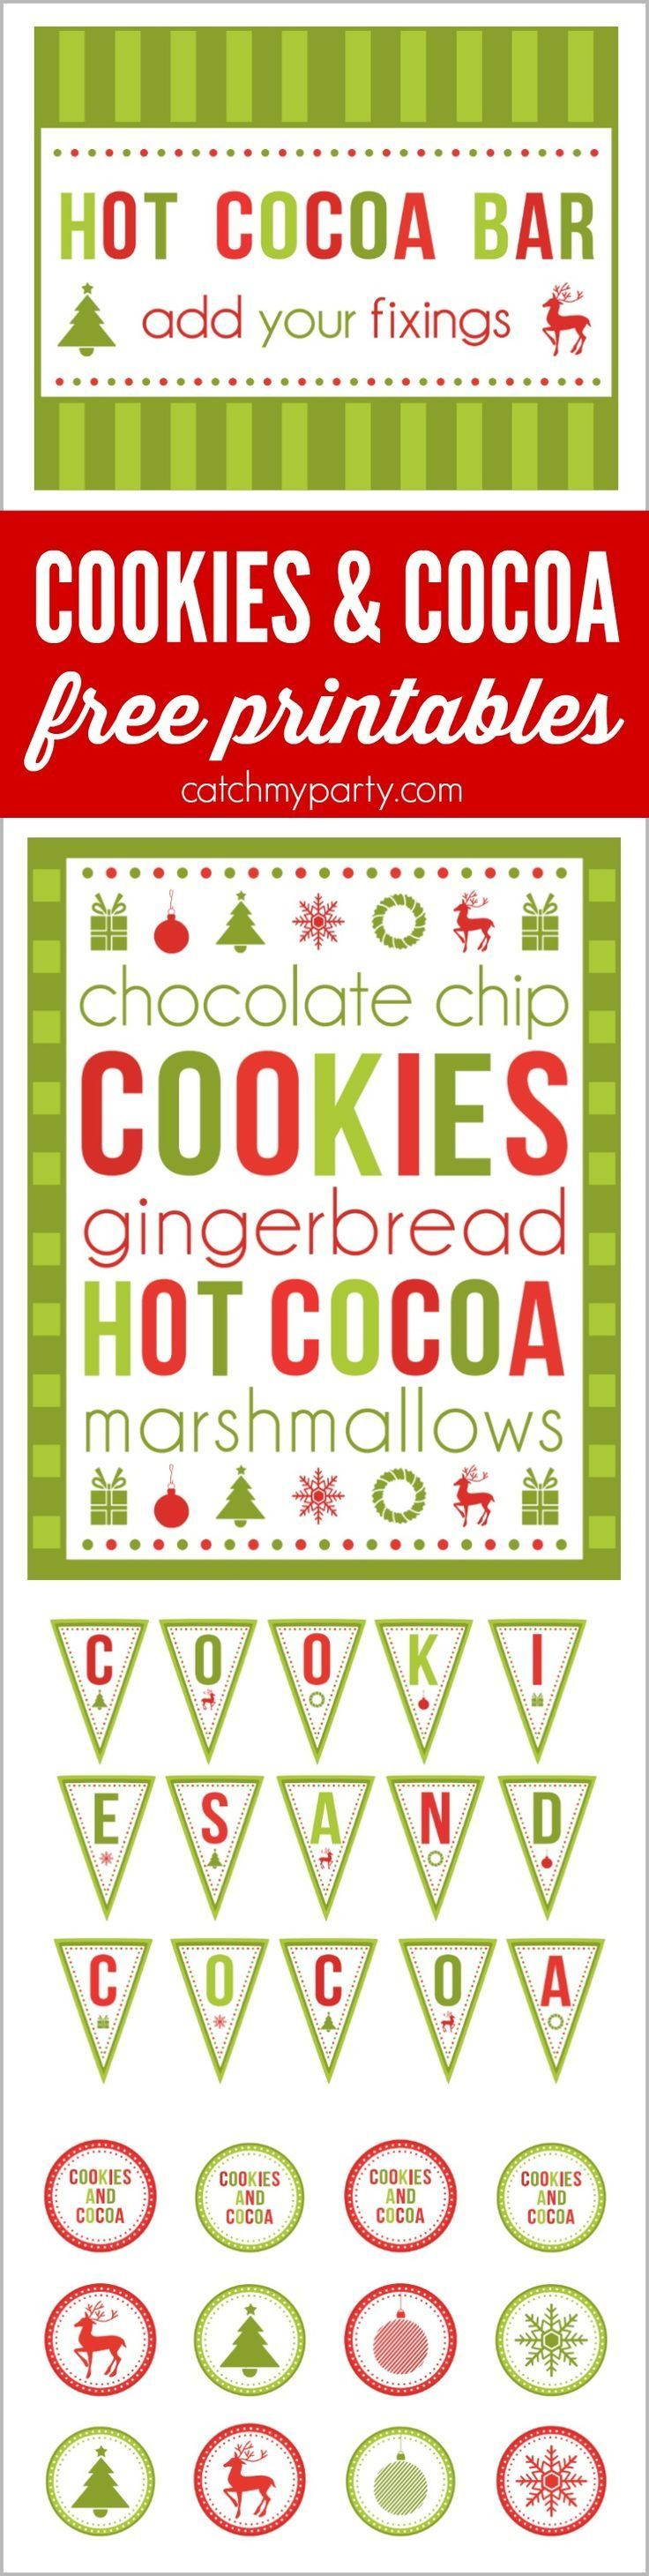 Free printables to host your cookies and cocoa holiday party.  There are editable holiday invitations and editable cards for your hot cocoa bar, plus banners, favor tags, and more! This is the perfect way to throw a  cookie exchange party for the holidays for kids, families or adults! See more party ideas at http://CatchMyParty.com.